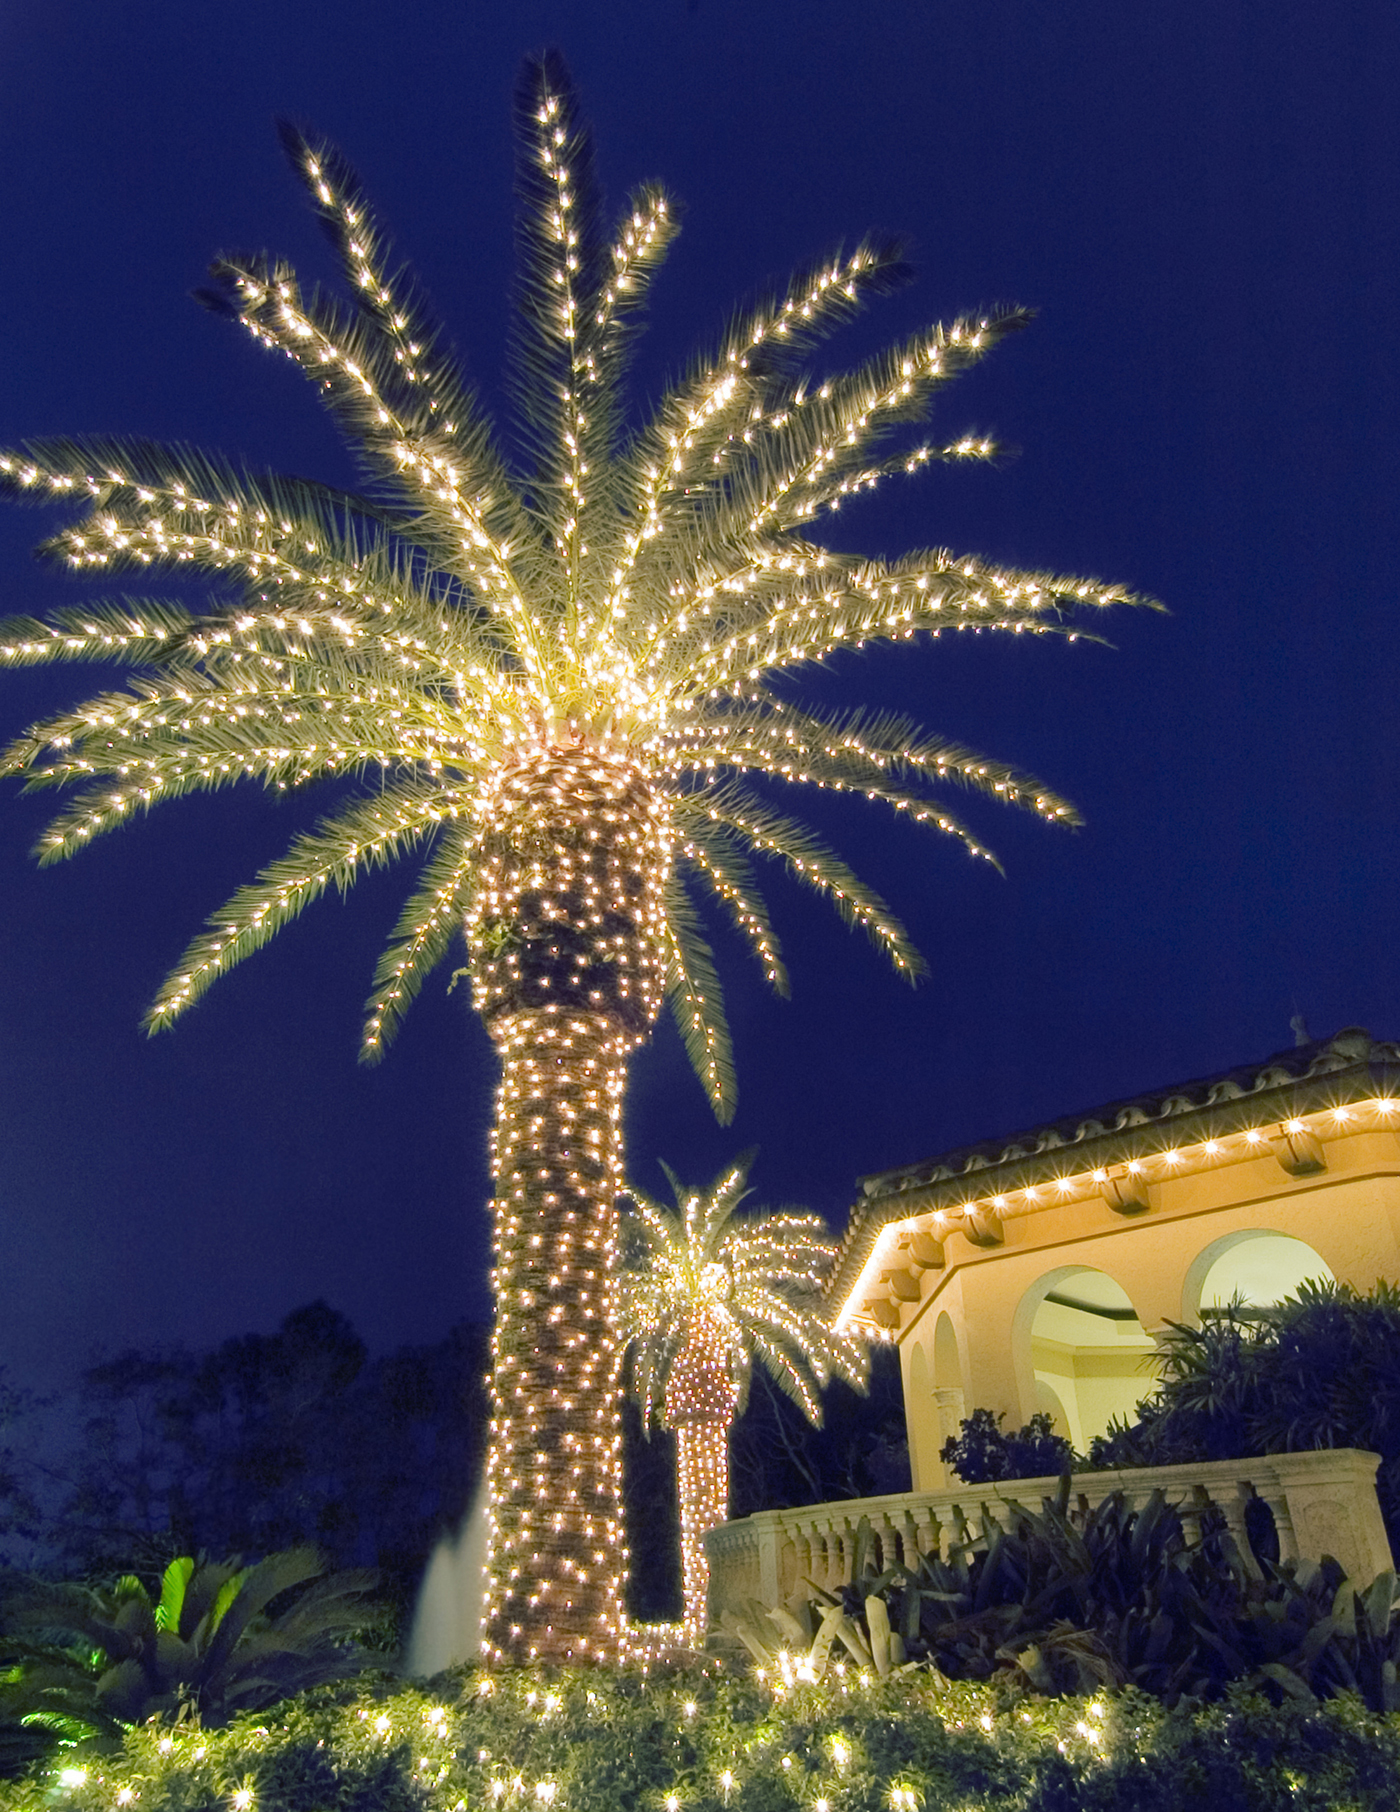 now is the time to schedule your professional outdoor christmas decorations installation we install residential and commercial lights alike - Professional Outdoor Christmas Decorations